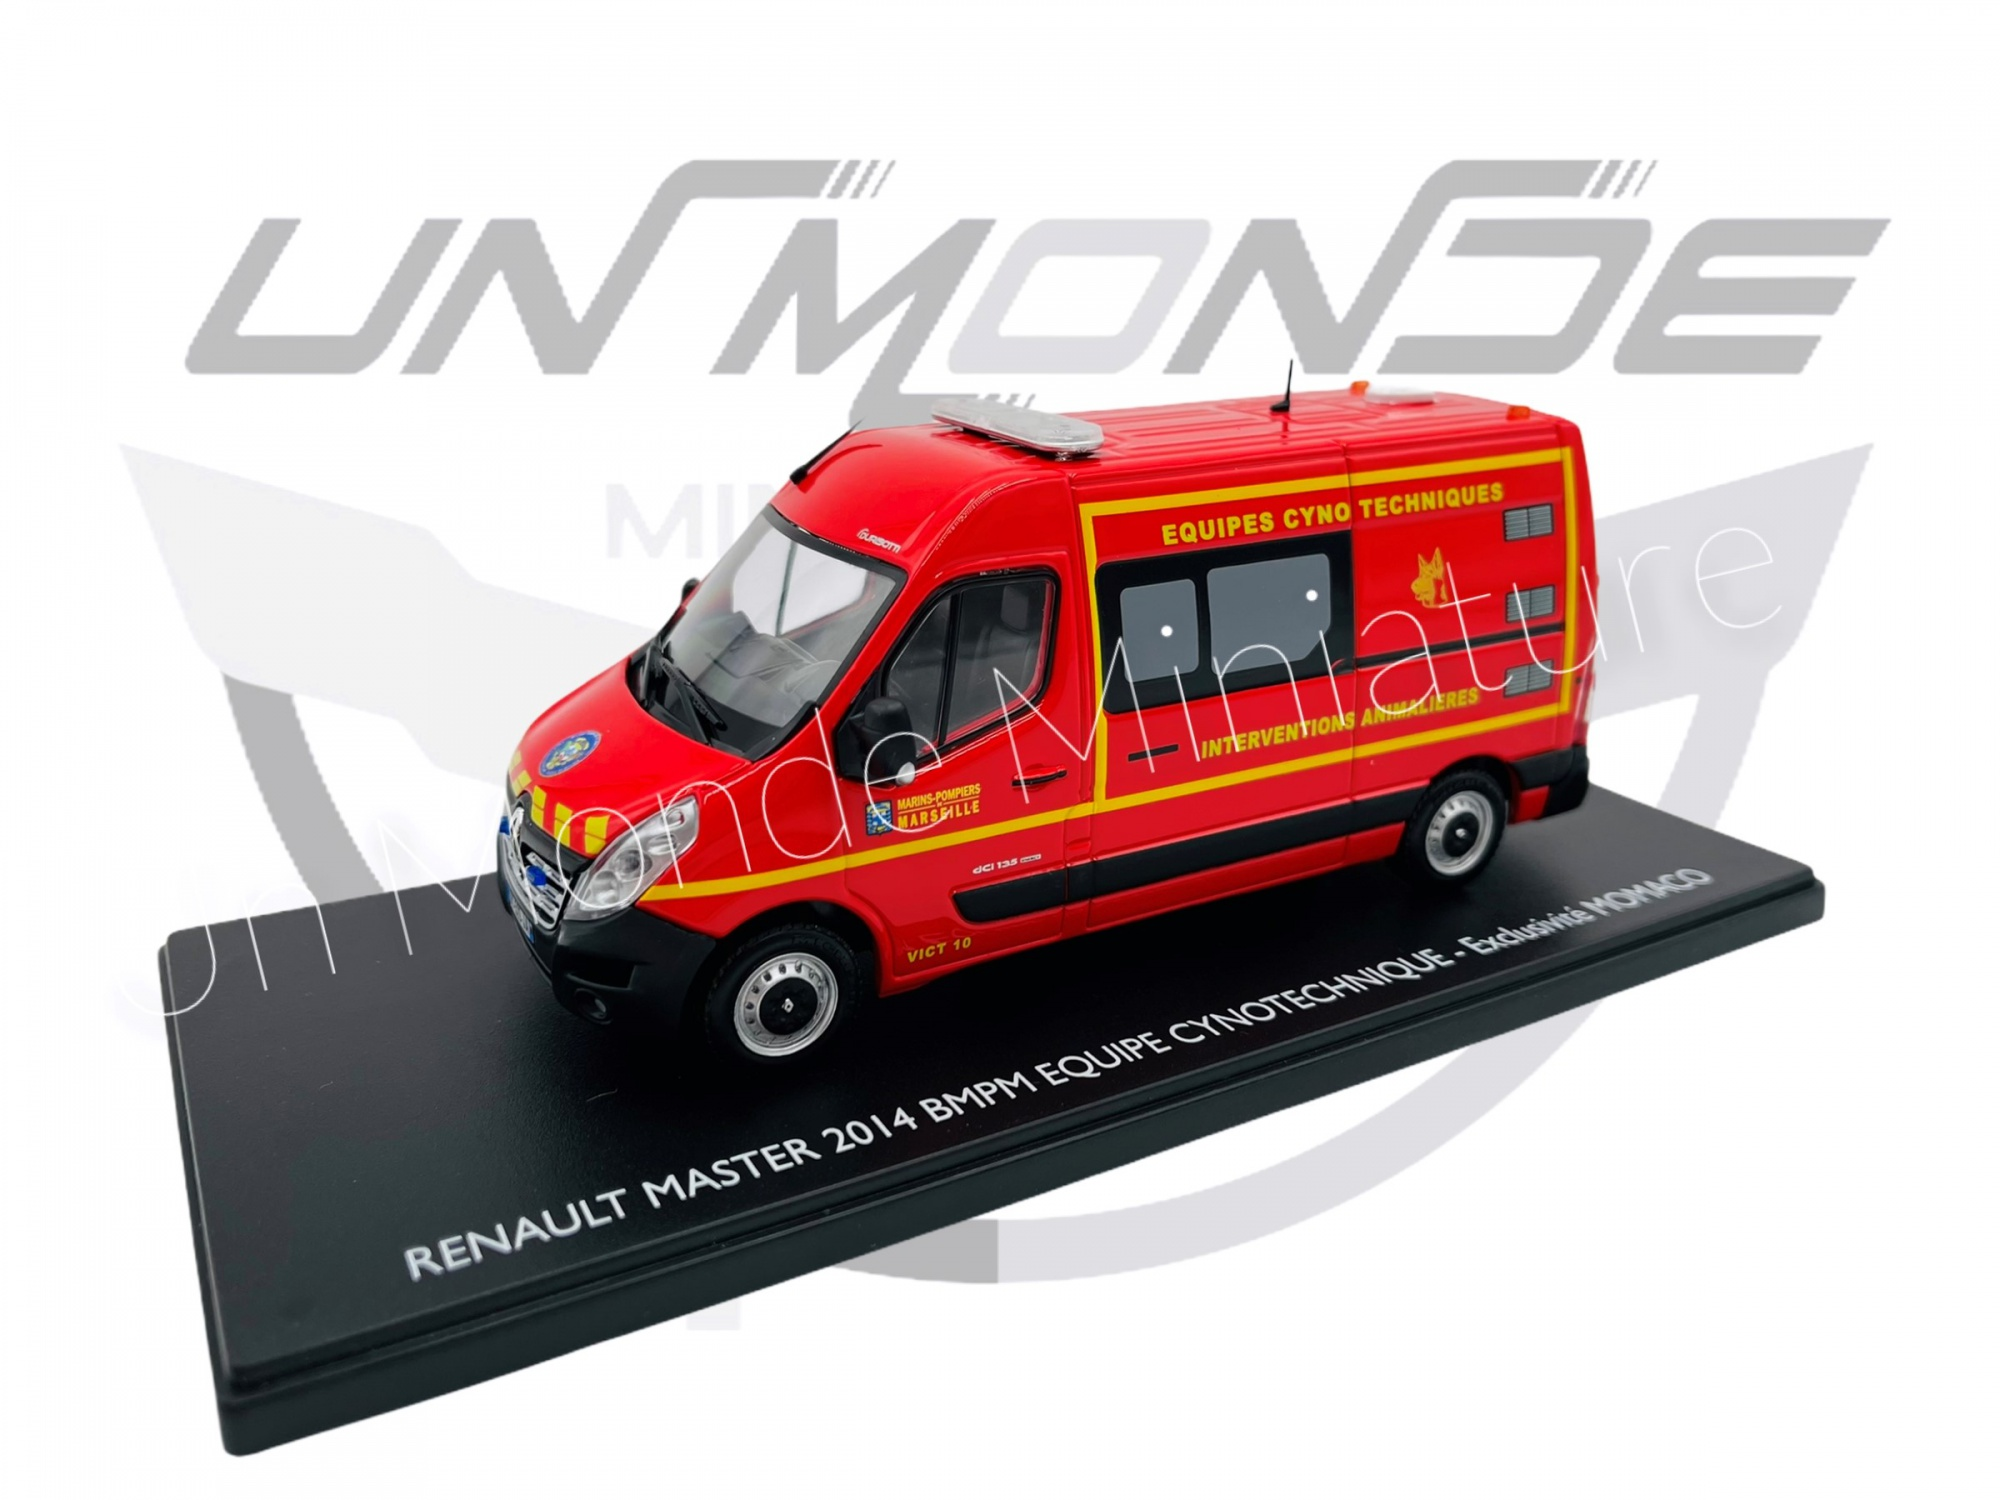 Renault Master 2014 VICT Vehicule D\'Intervention Cynotechnique 13 BMPM